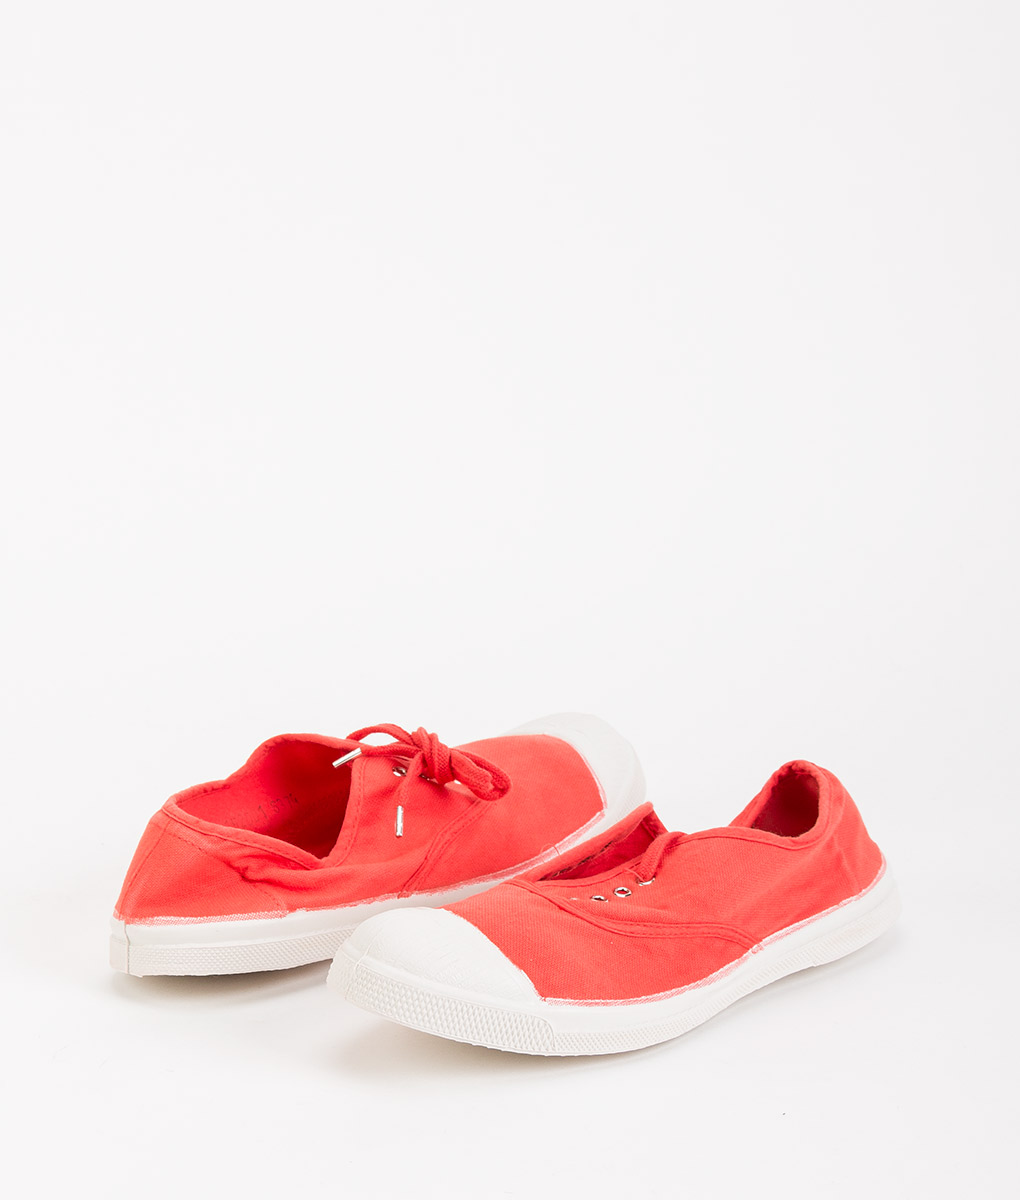 BENSIMON Women Sneakers 15004 TENNIS LACE, Poppy 34.99 1